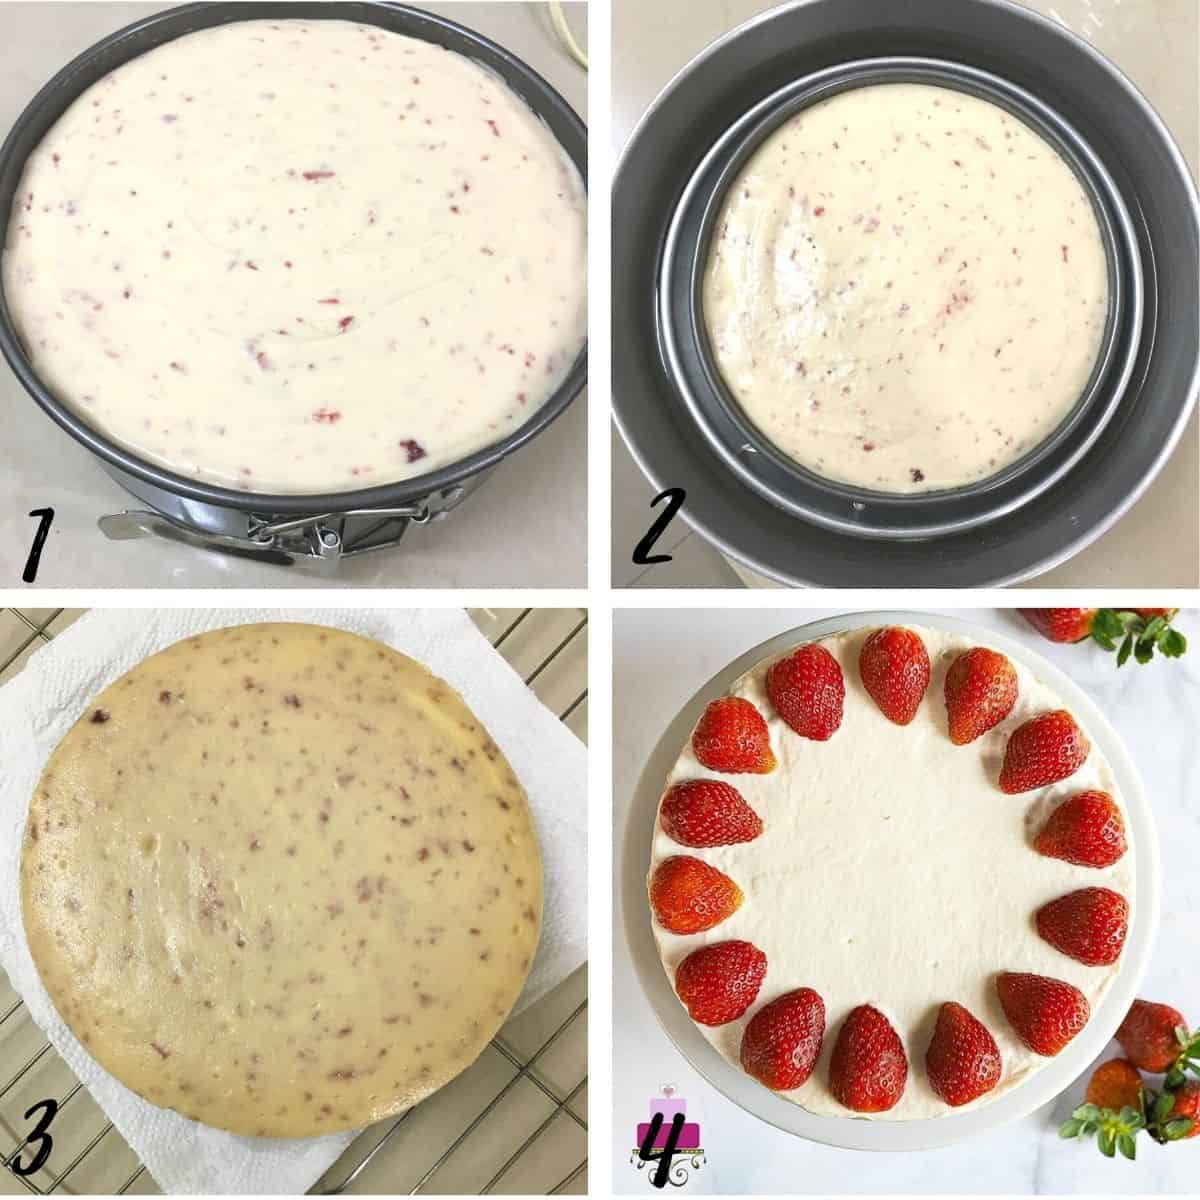 A poster of 4 images showing how to bake and decorate a strawberry cheesecake